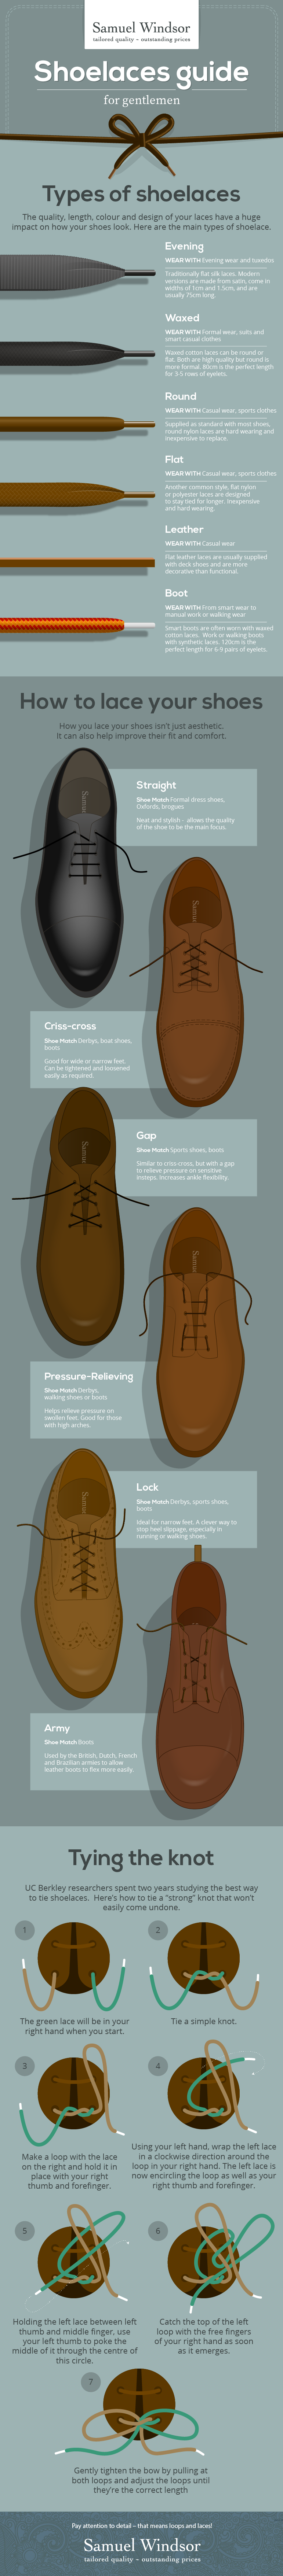 Shoelace Guide for Gentlemen